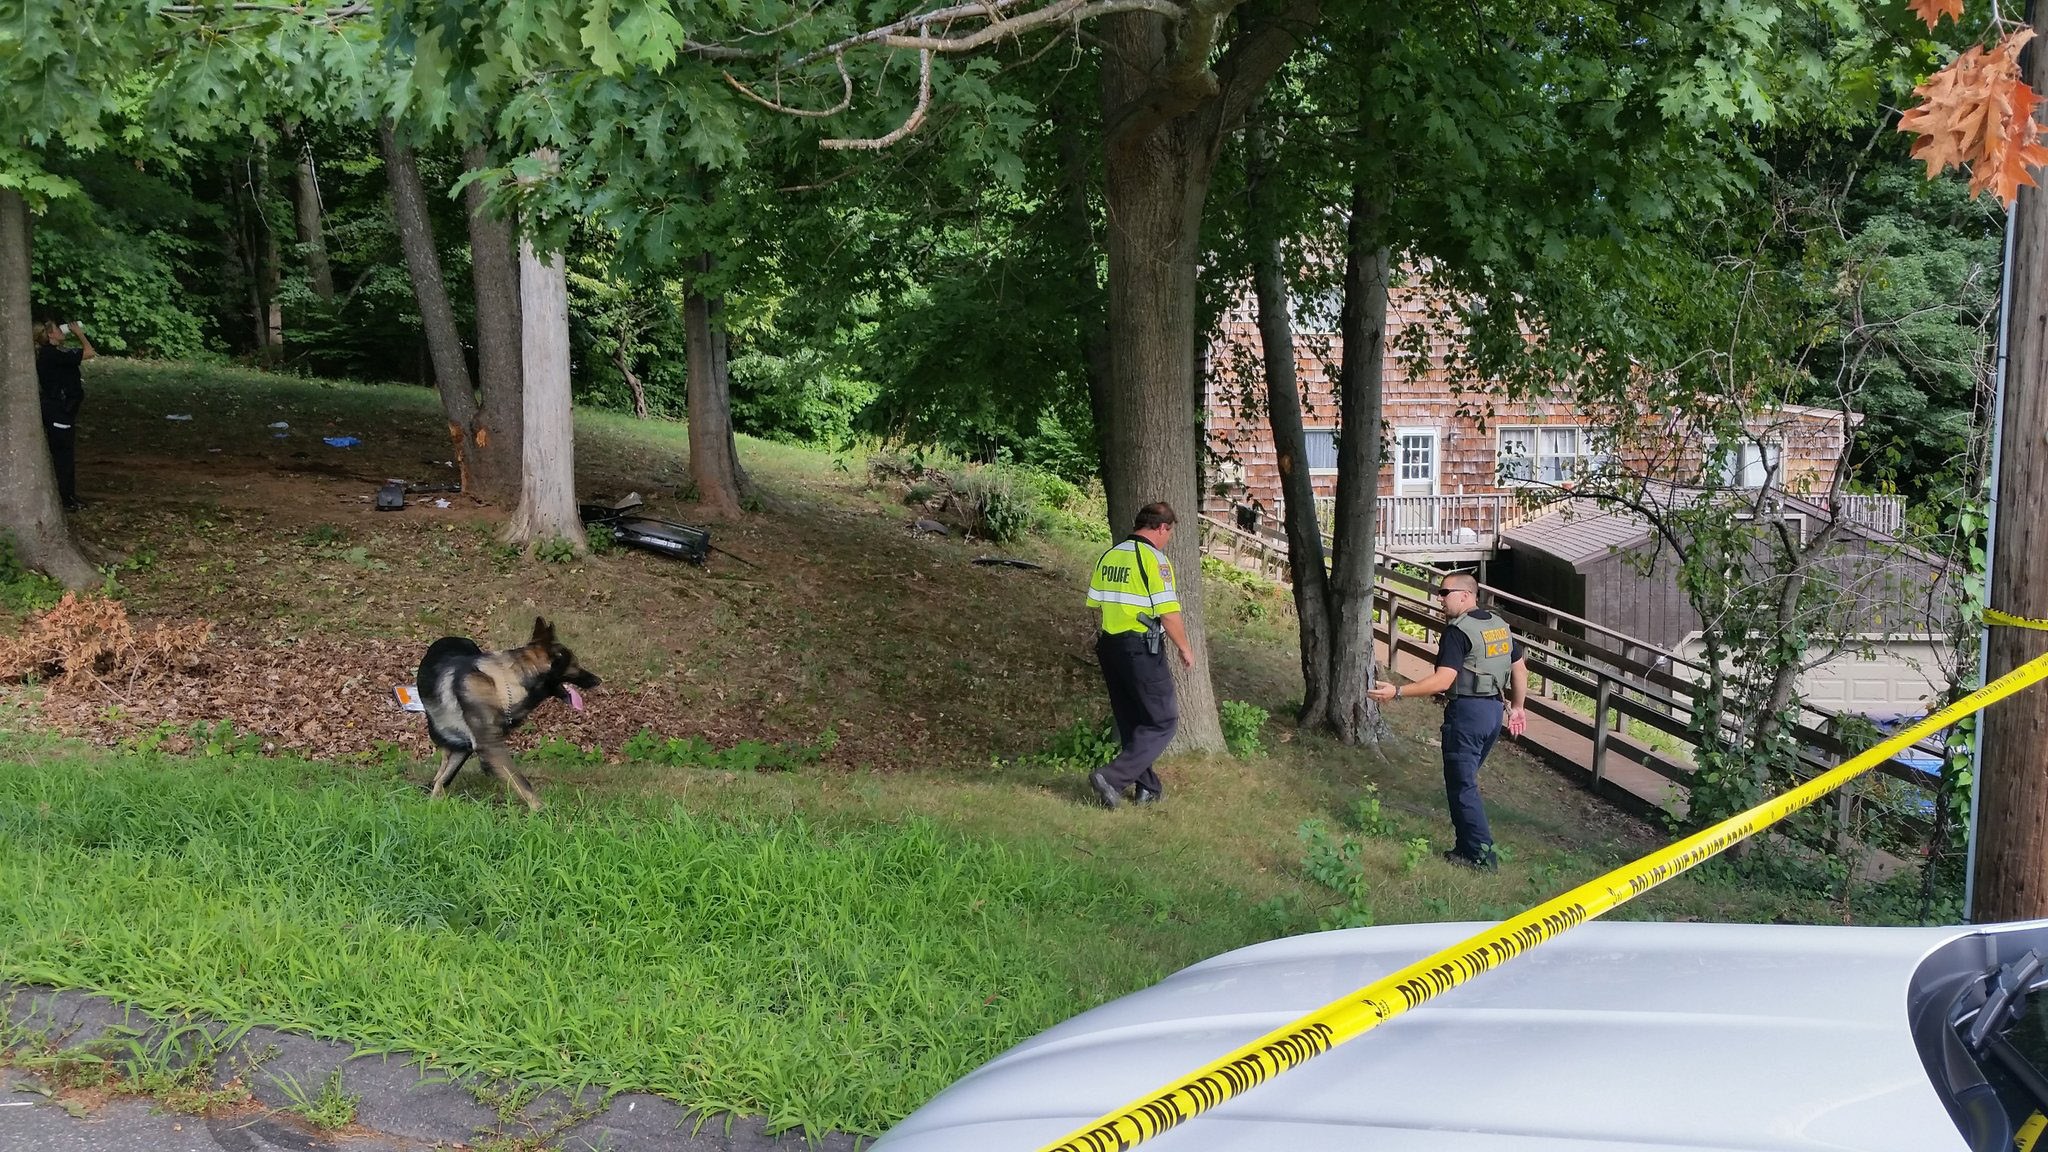 MERIDEN — City police continue to investigate a one-car